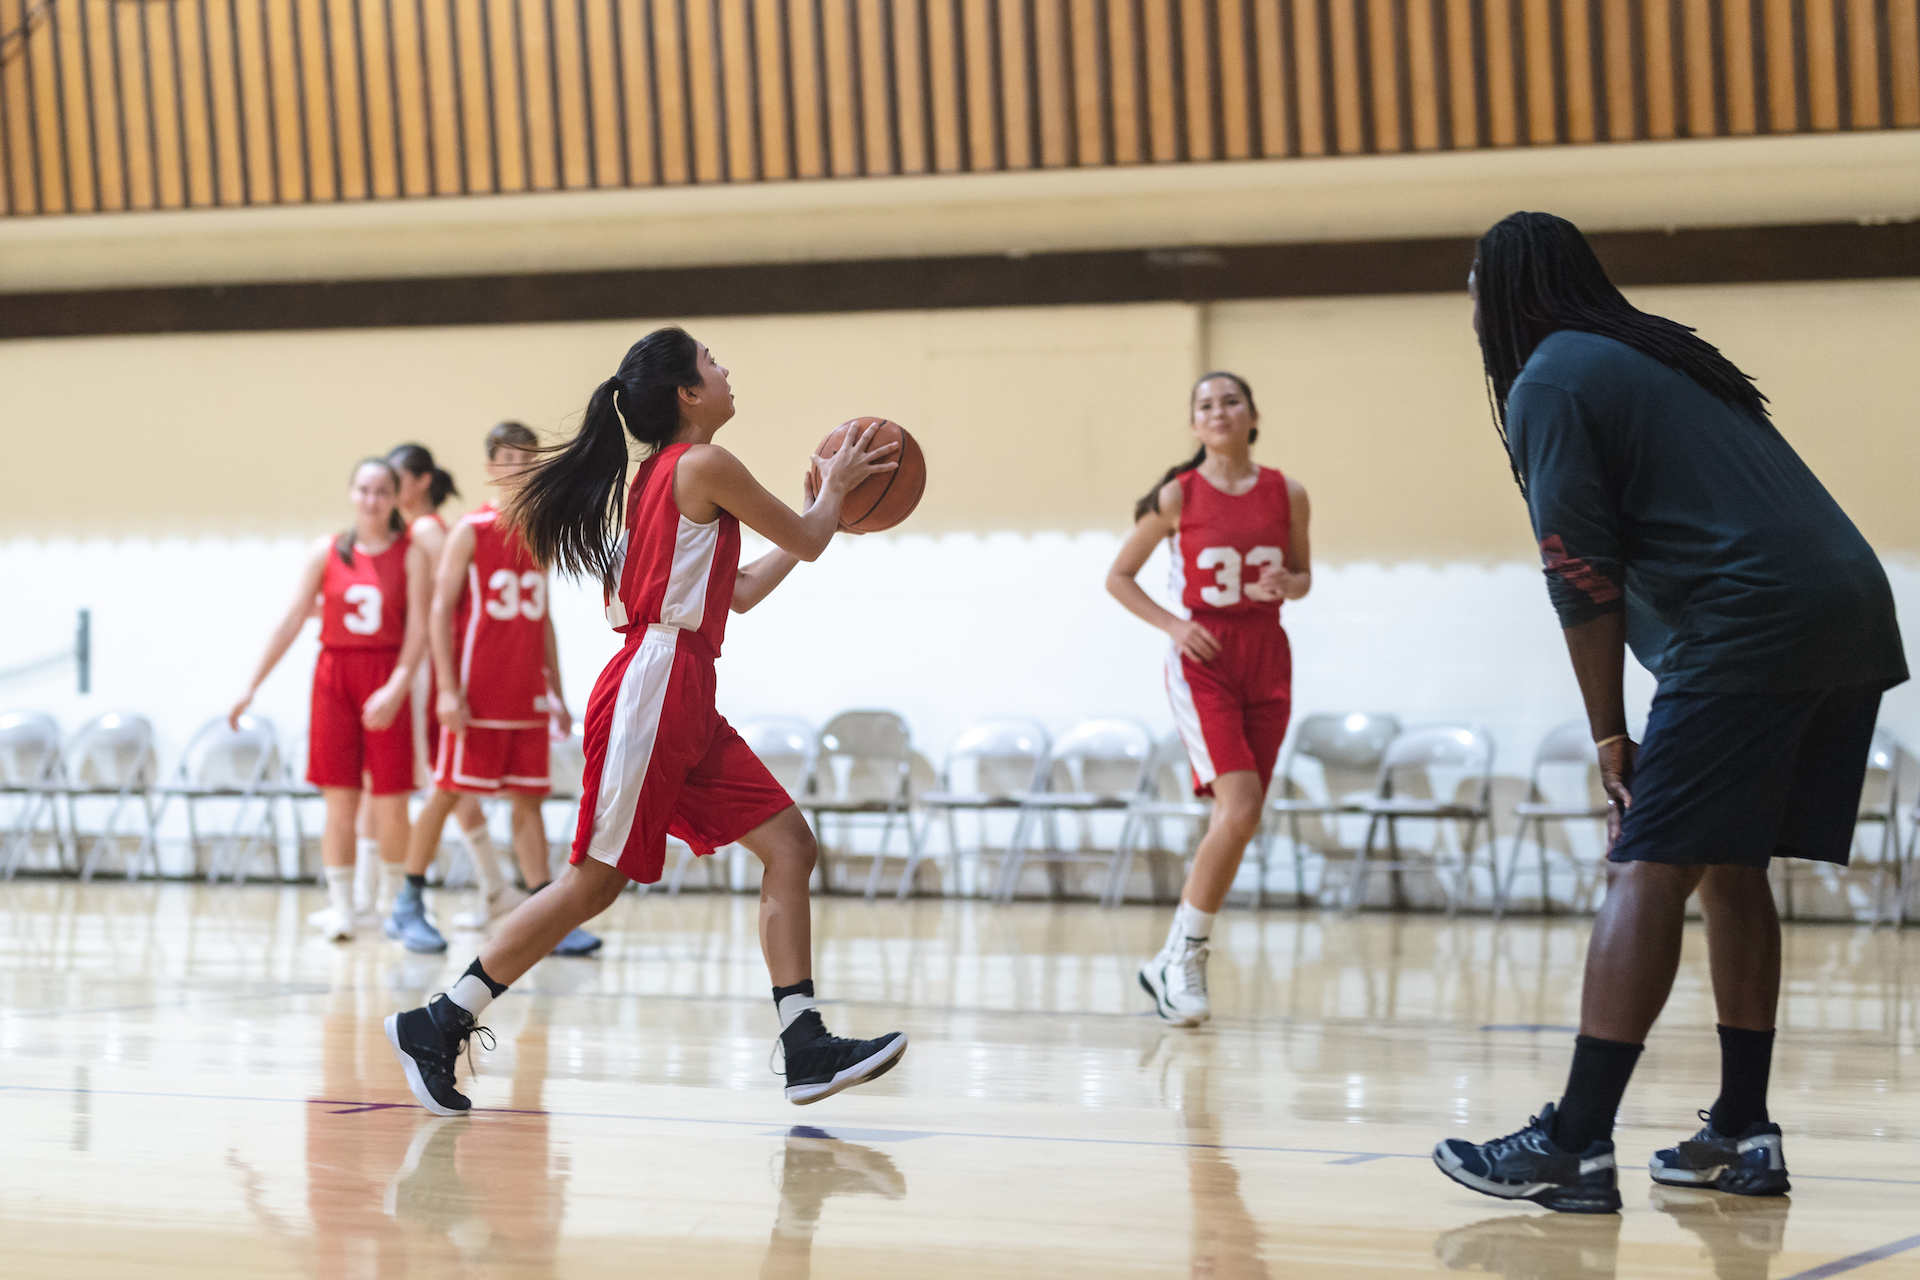 Coach has his co-ed basketball team run layup drills during practice. One girl is dribbling and about to pass to her teammate.